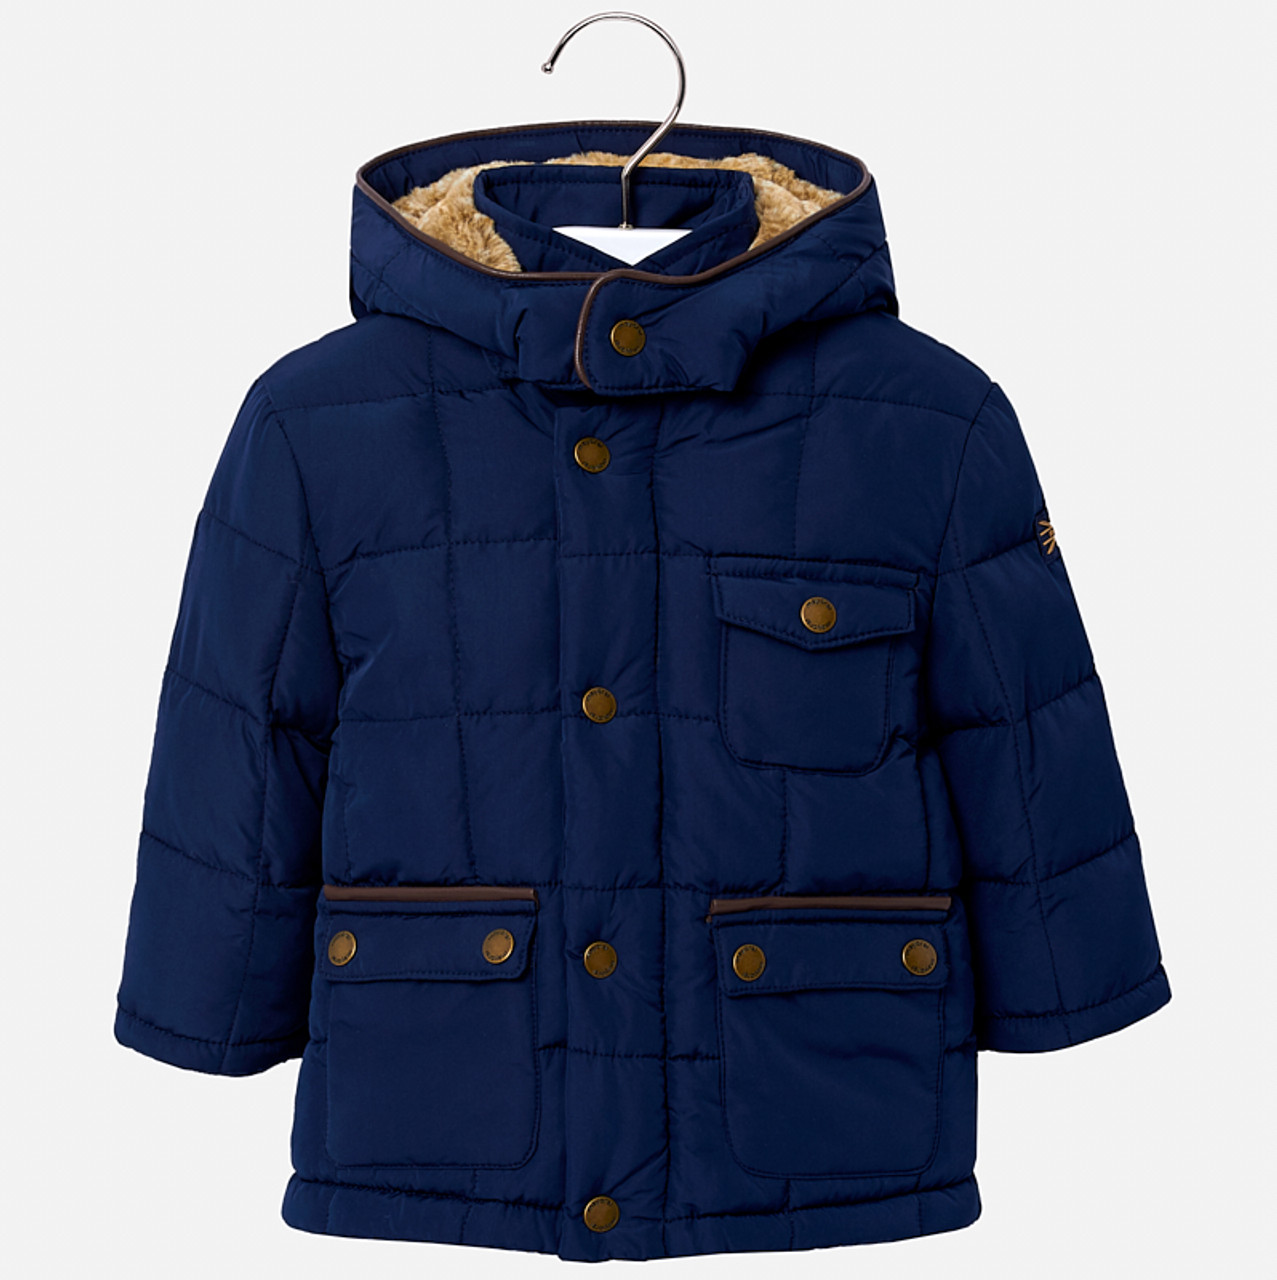 670283156 Mayoral Baby Boys Coat - Navy